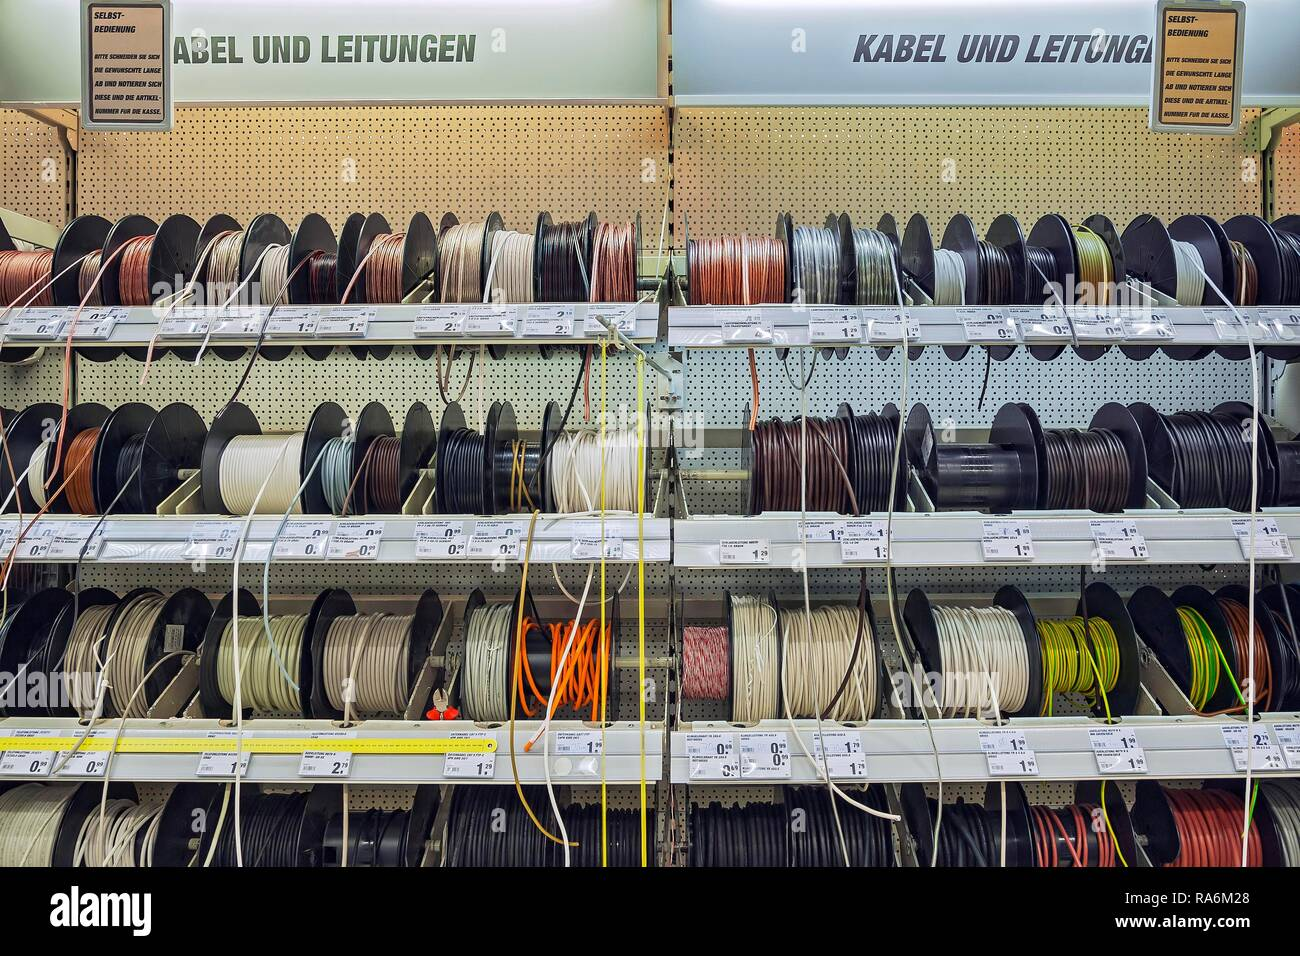 Cables and wires, hardware store, Germany - Stock Image